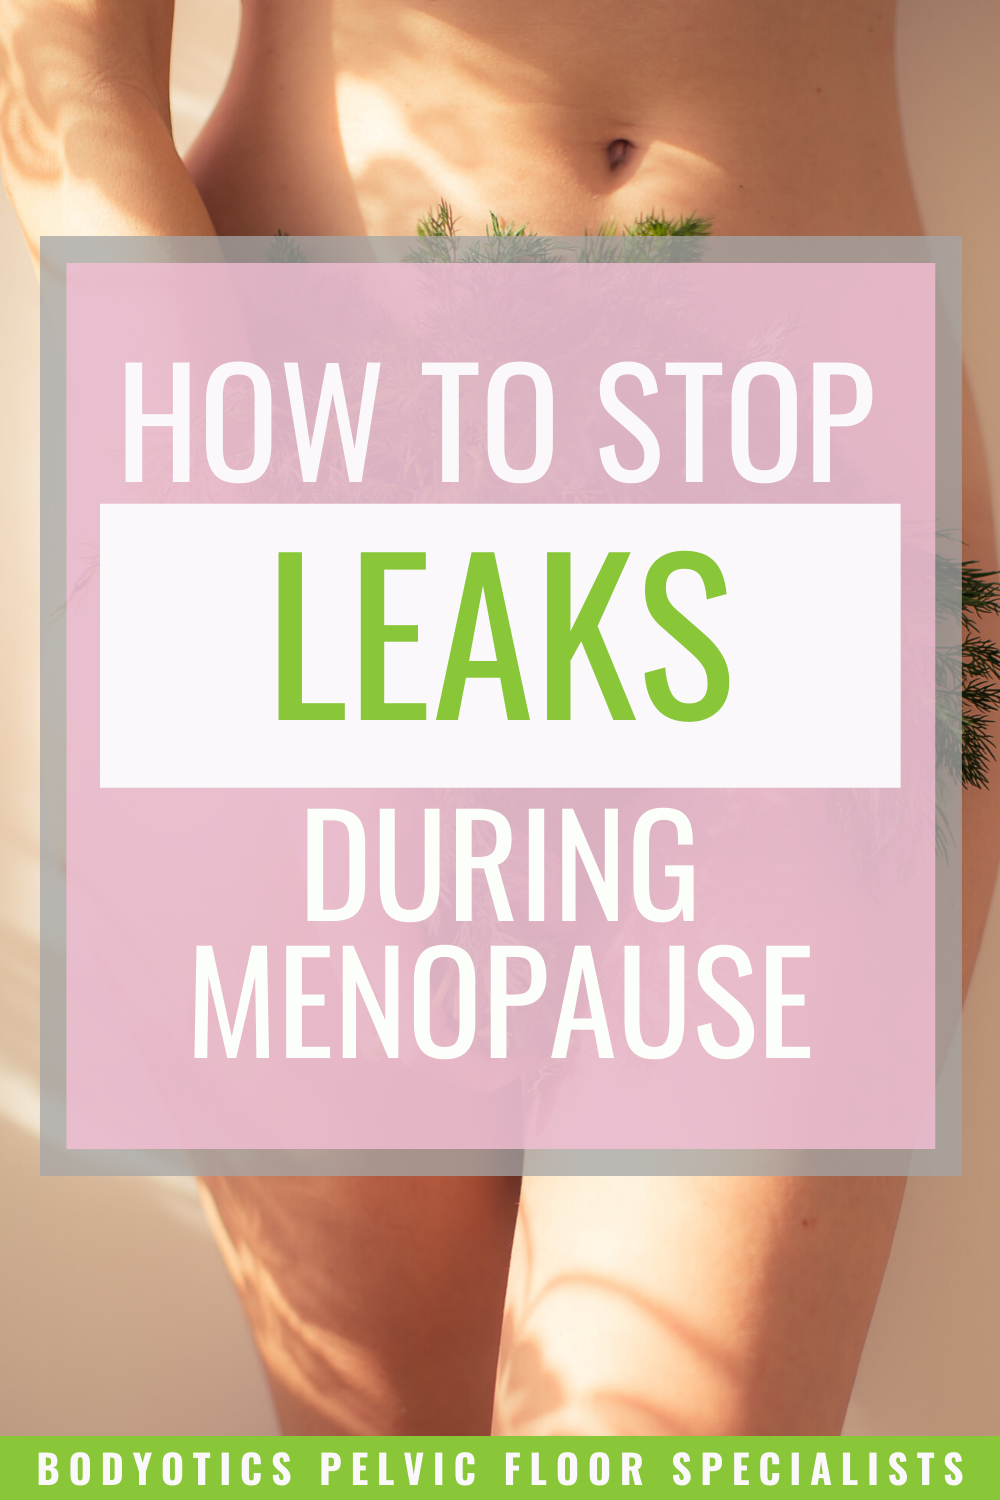 Pin on Menopause Treatment and Products